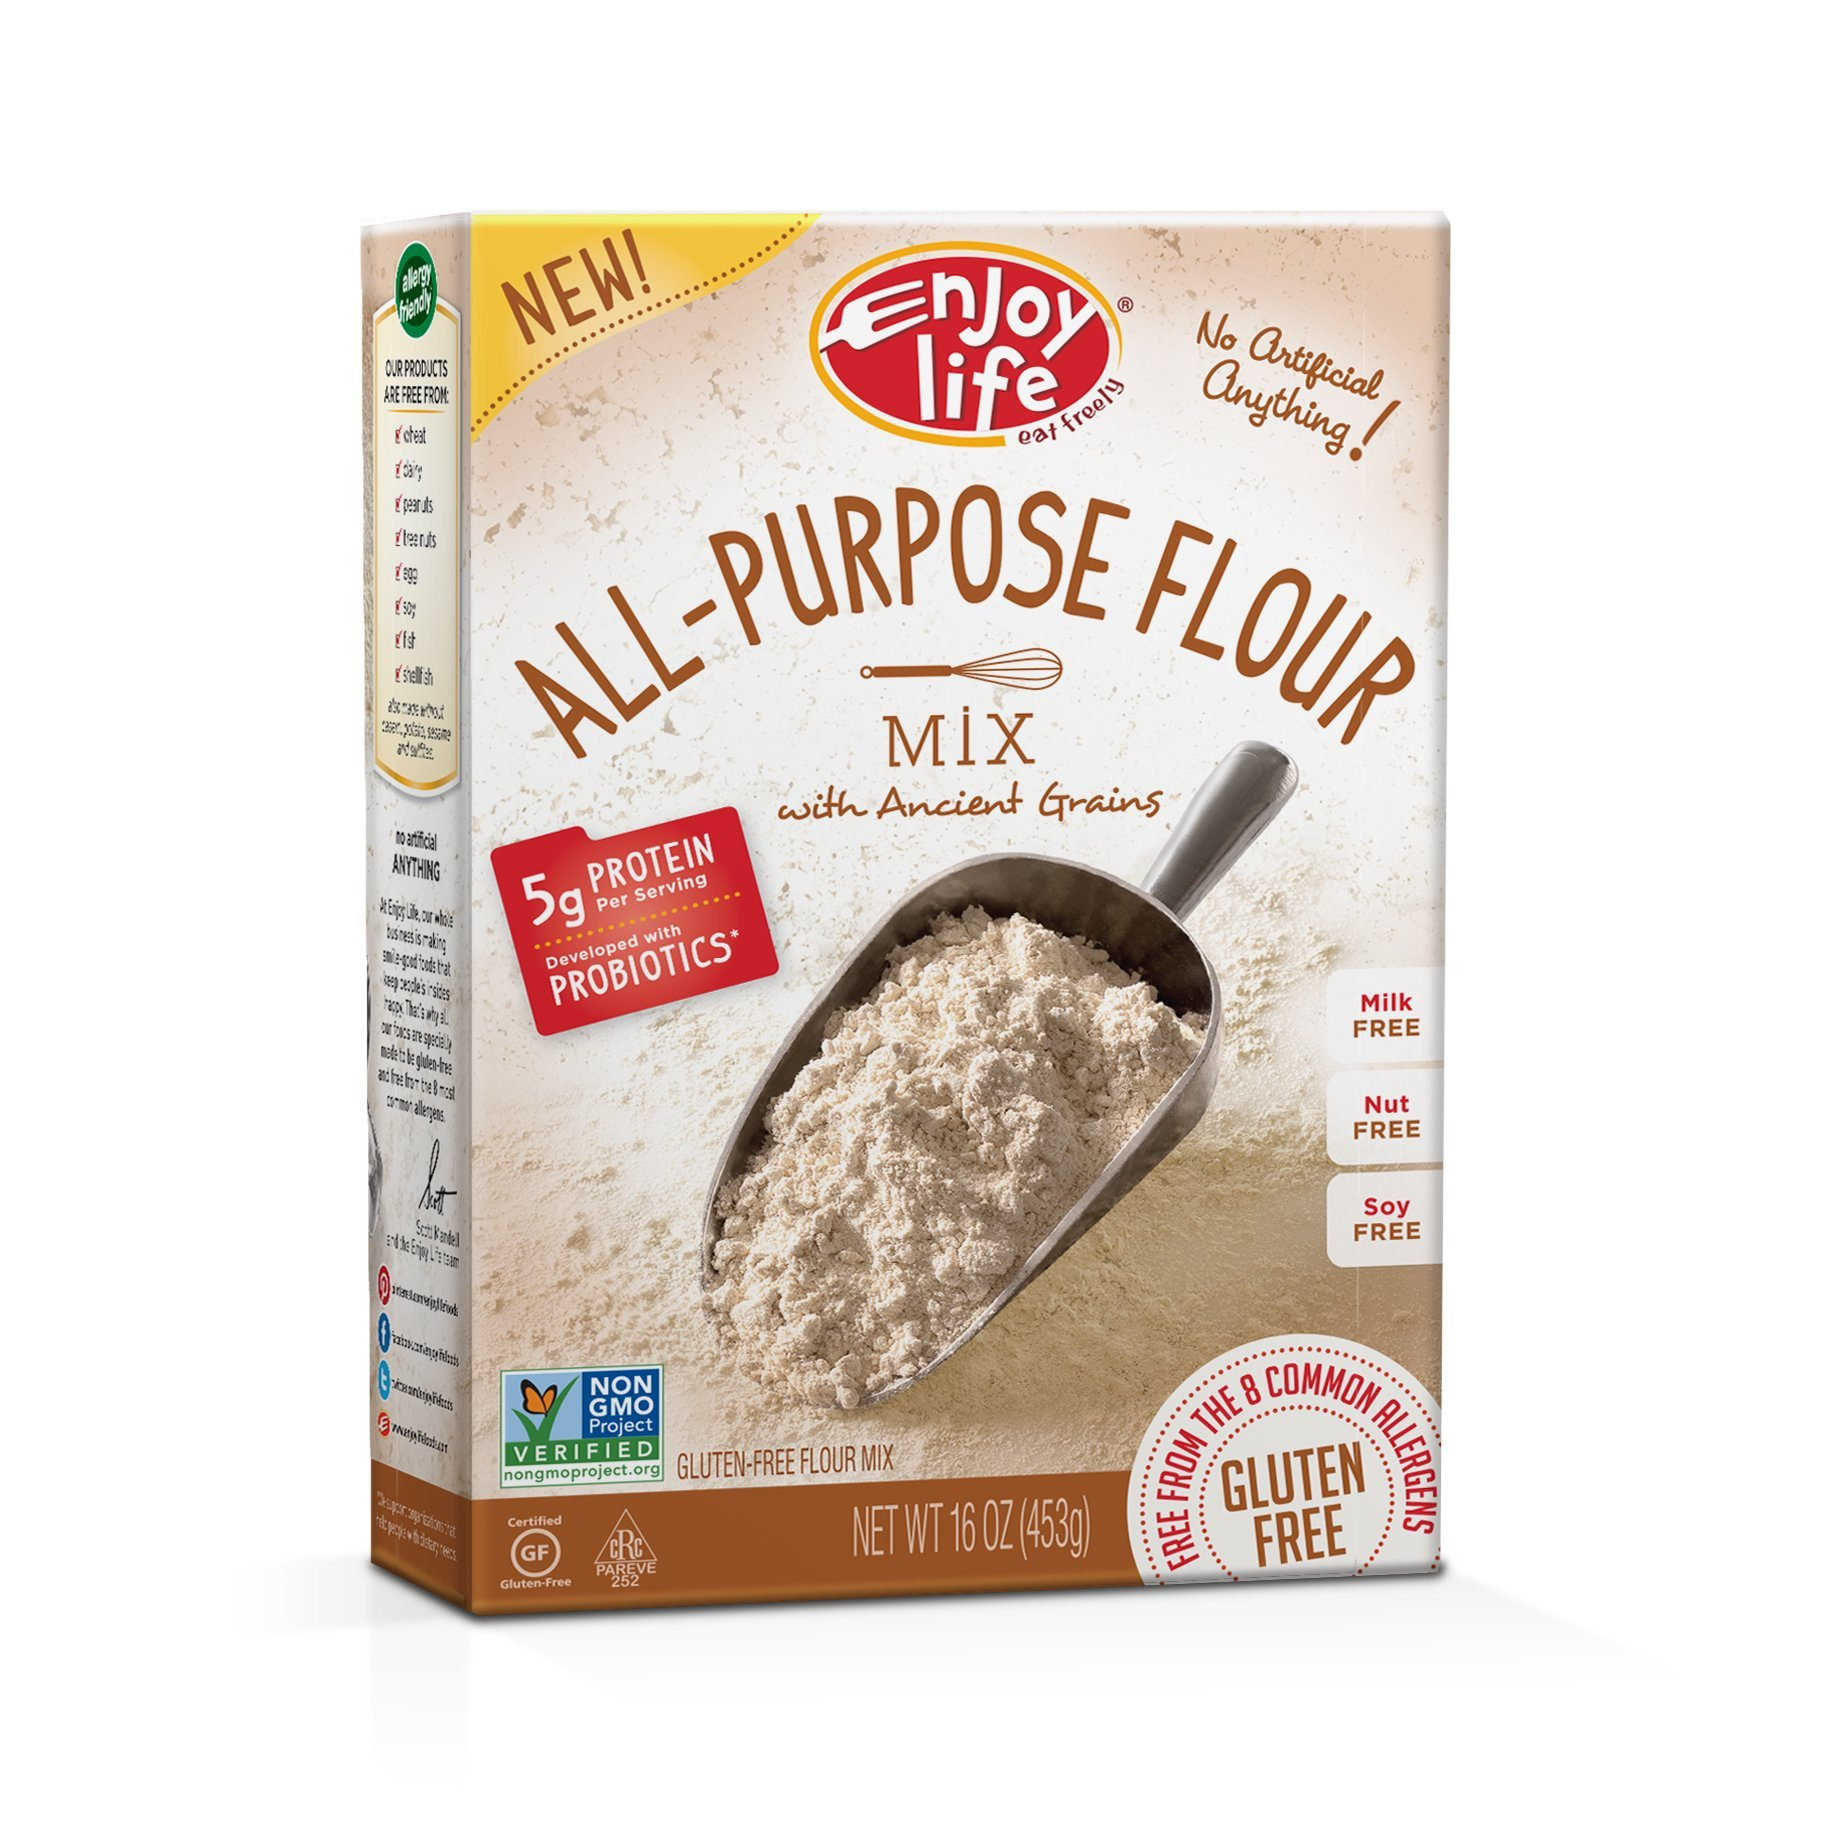 Enjoy Life Gluten Free All-Purpose Flour Mix, Gluten, Dairy, Nut & Soy Free and Vegan, 16 Ounce